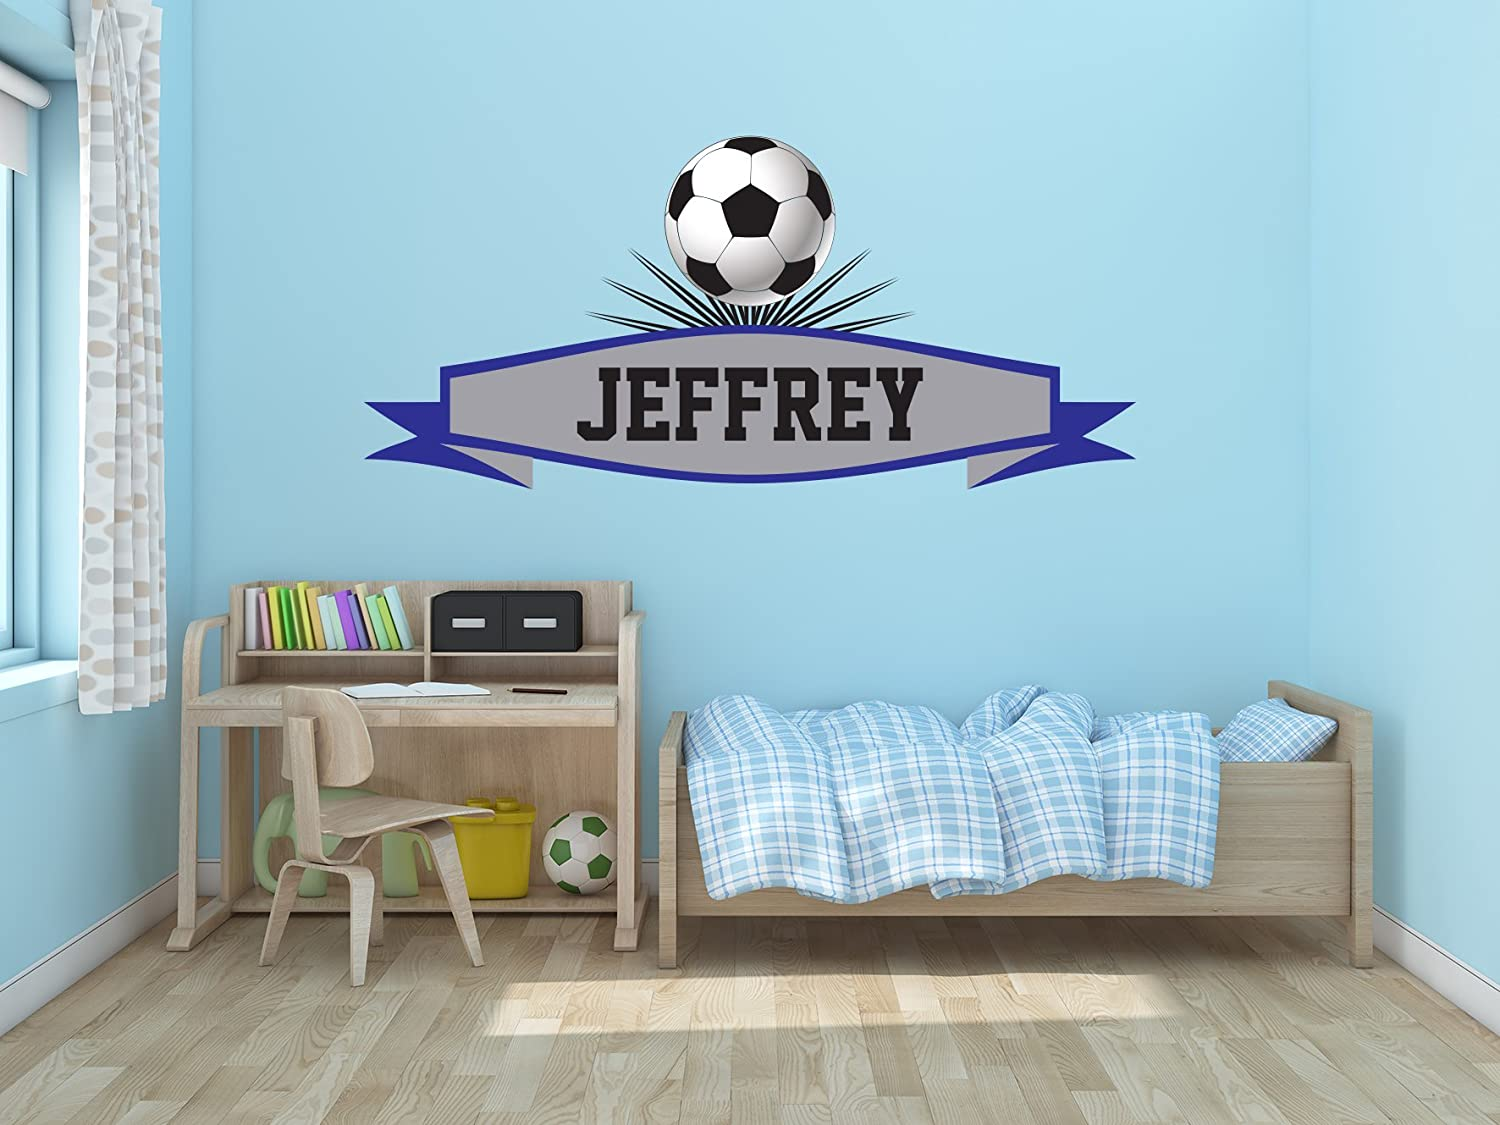 Soccer Ball Custom Name - Football Personalized Name Decal - Wall Decal Vinyl Sticker for Home Interior Decoration Nursery Children Bedroom Windows (33